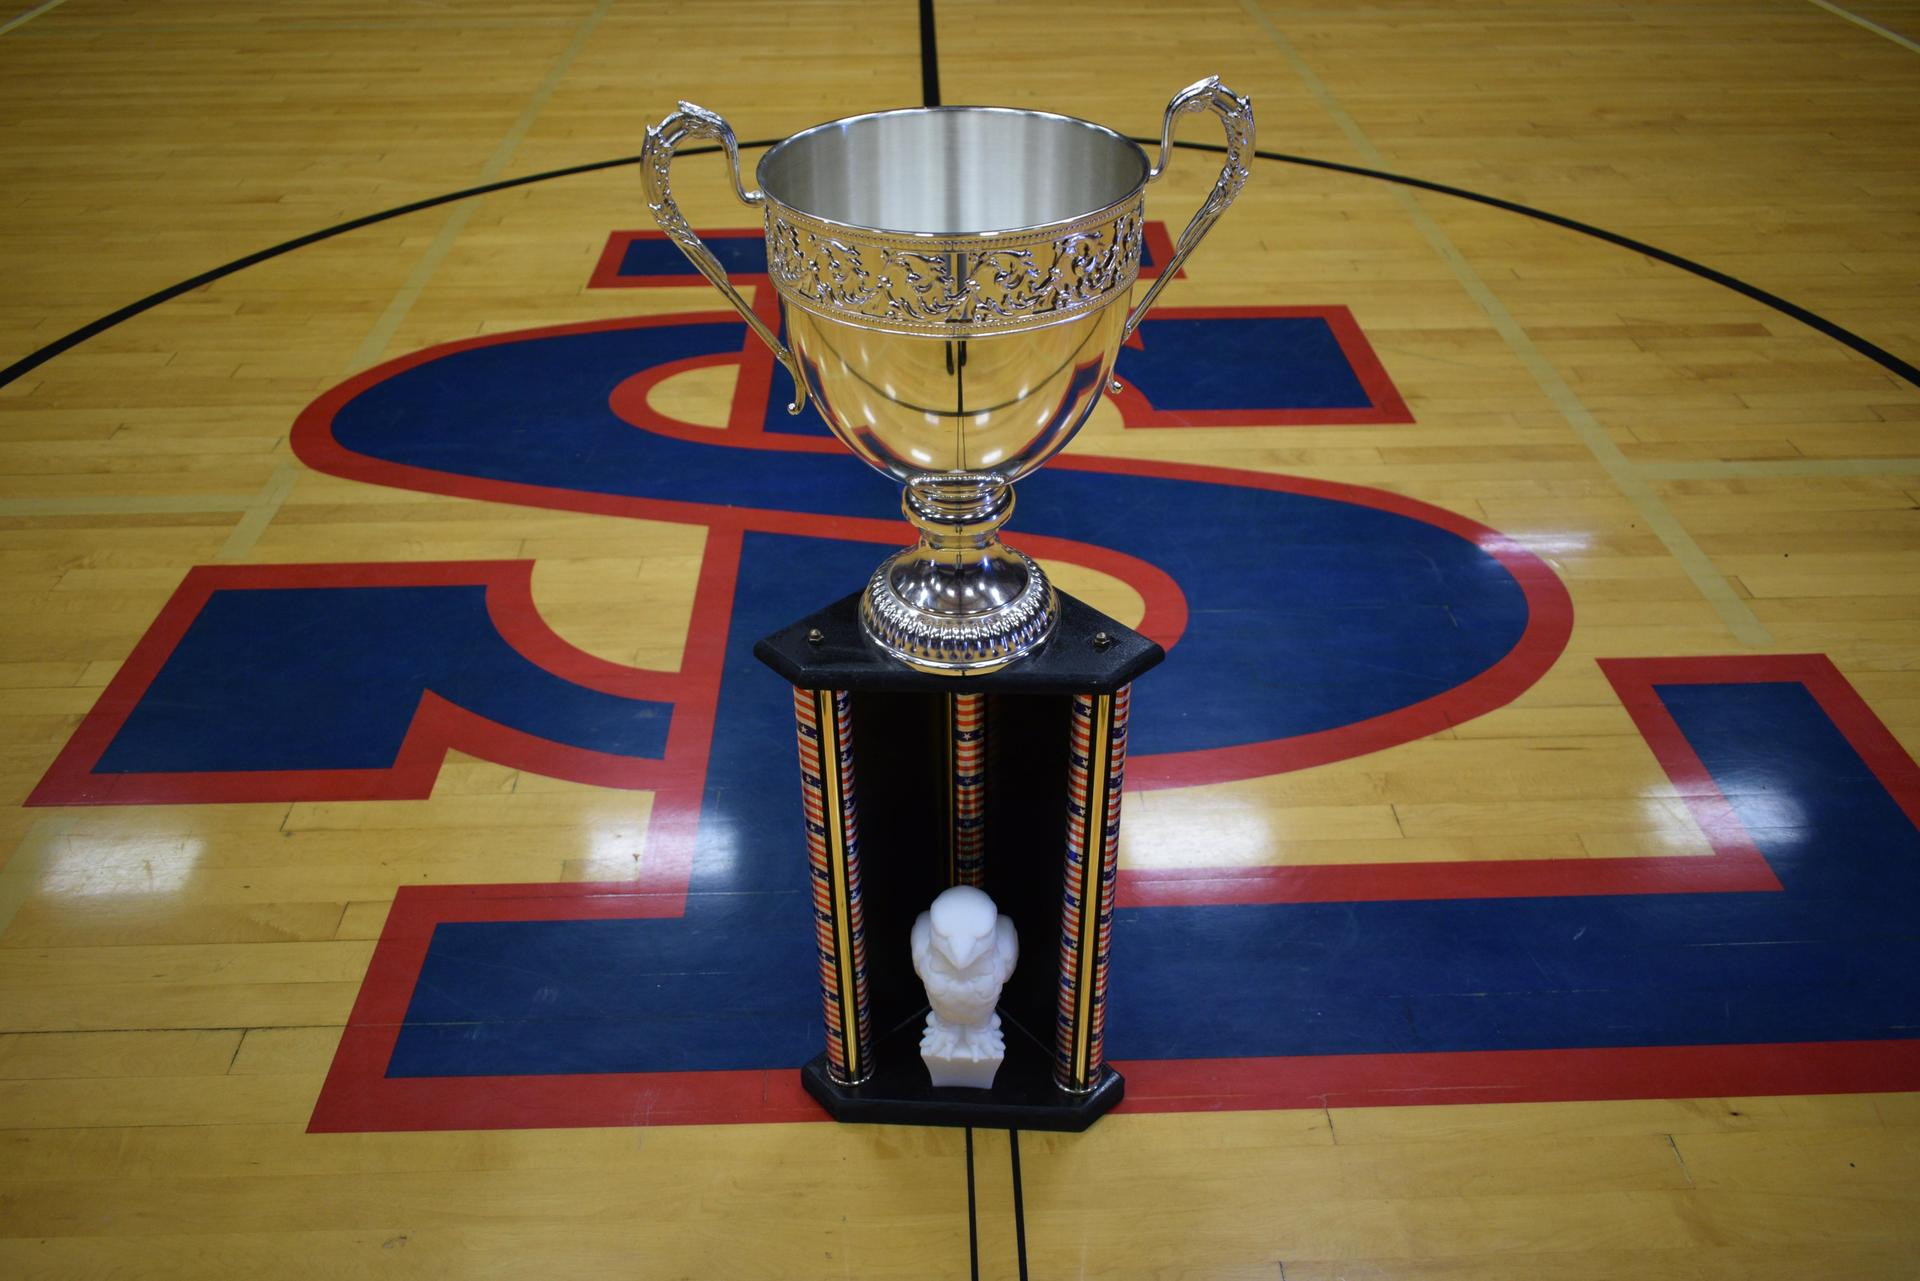 trophy sitting on gym floor